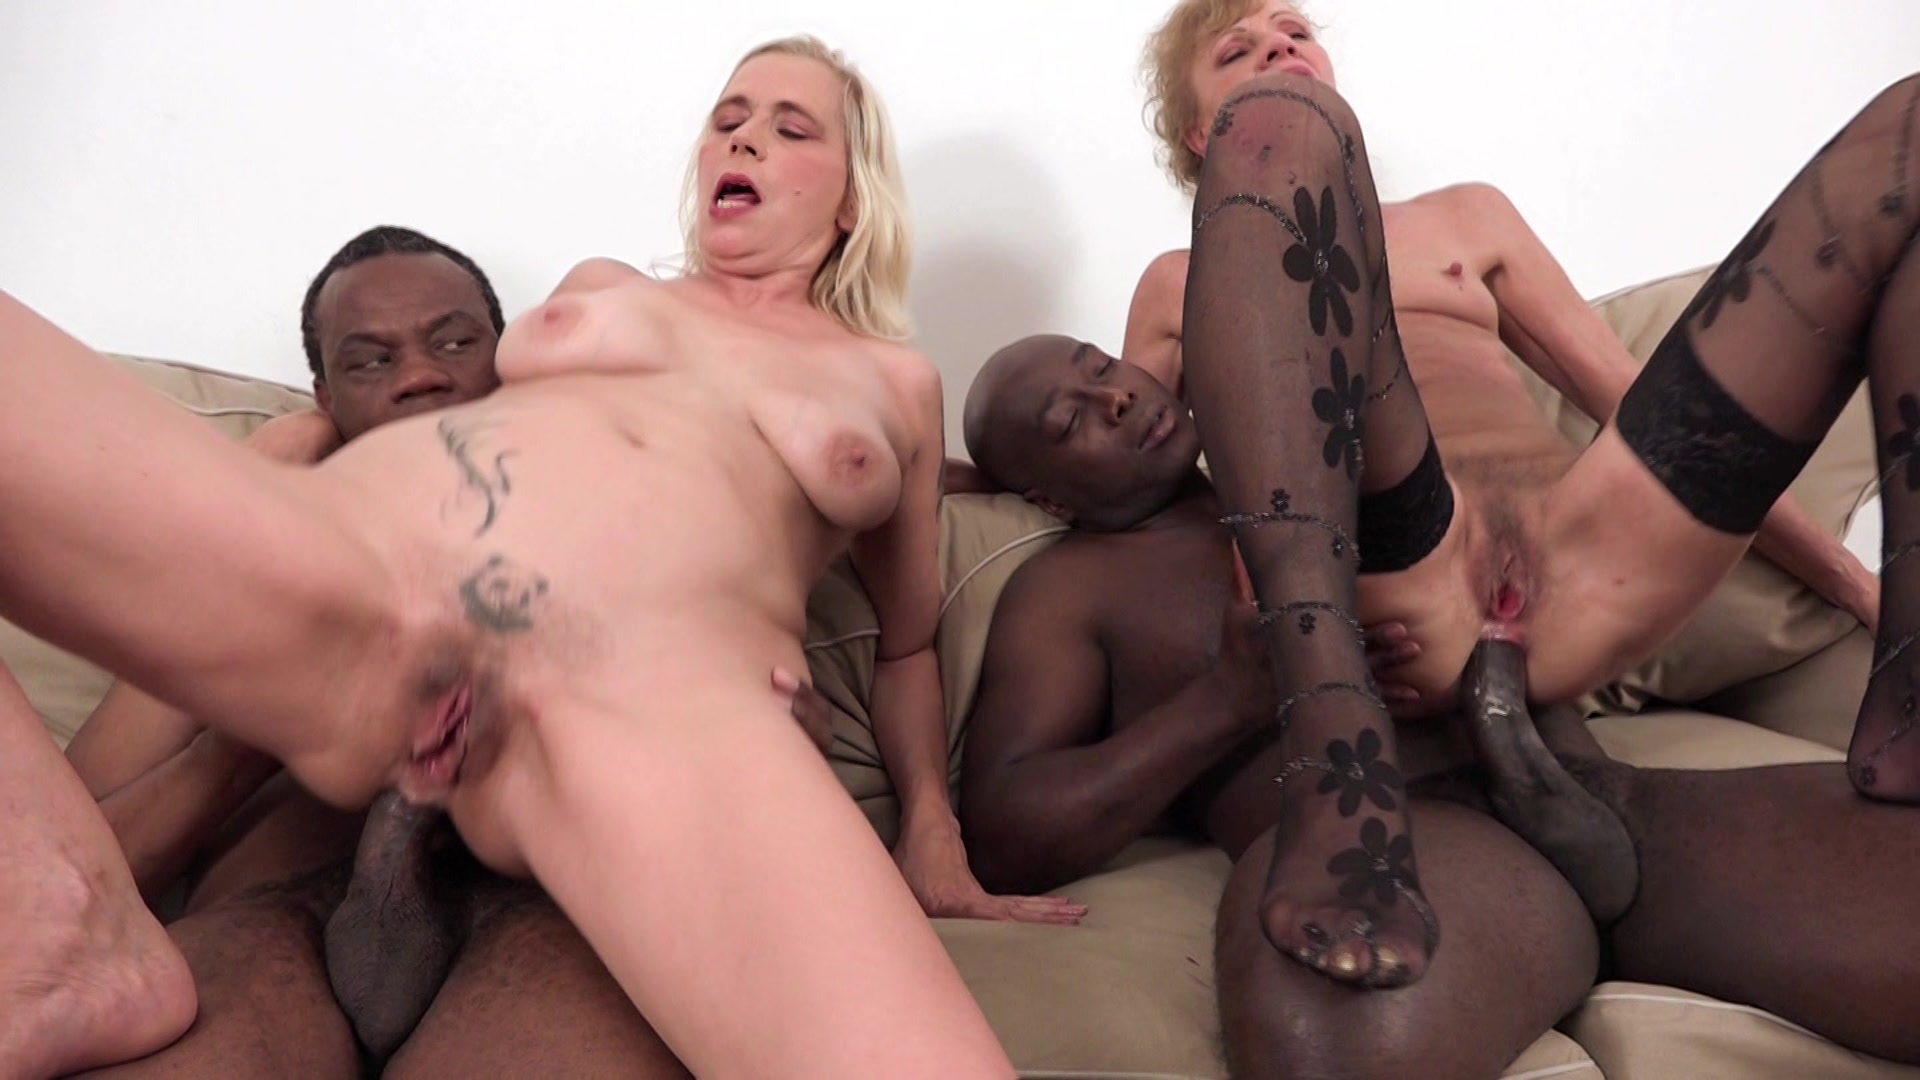 Free porn mature ebony movies sorry, that